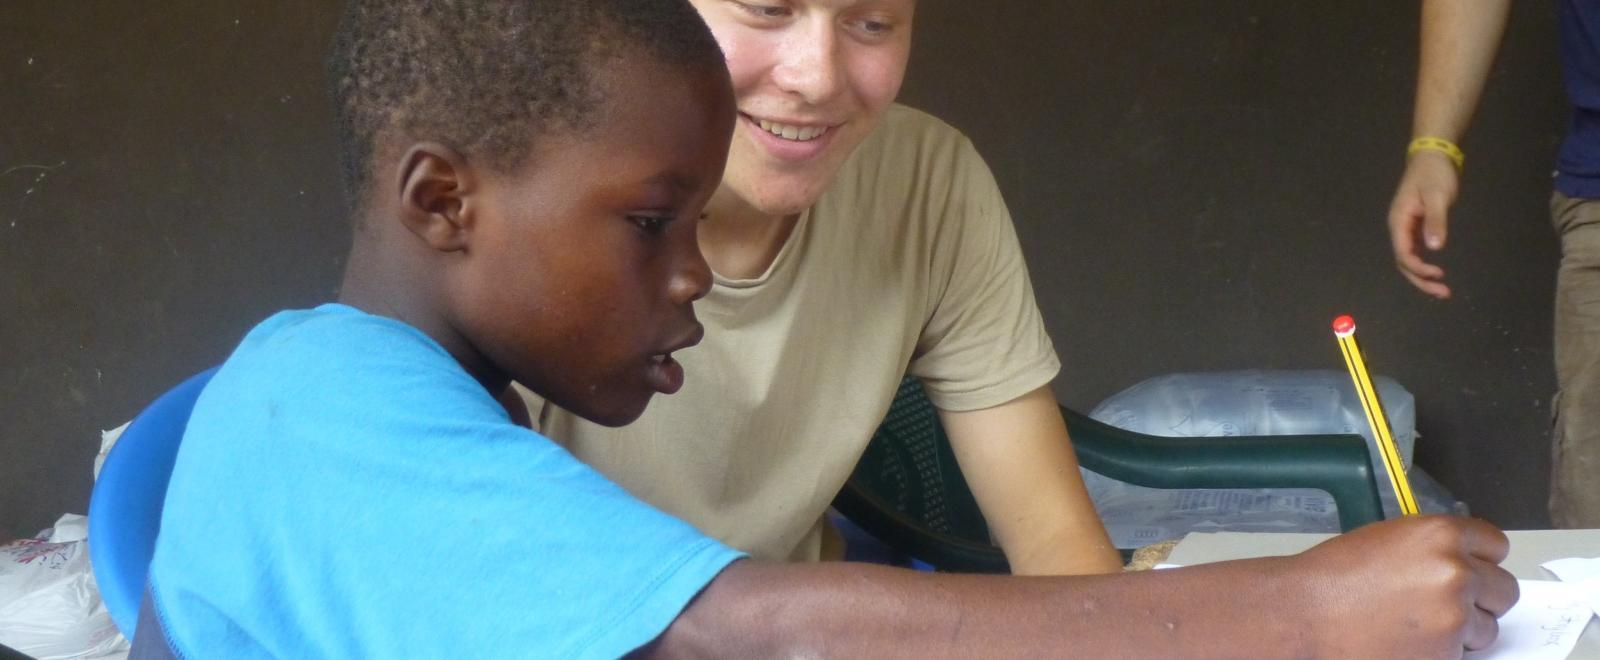 A volunteer teaching in Africa helps a child with a homework assignment at a placement in Ghana, Africa.